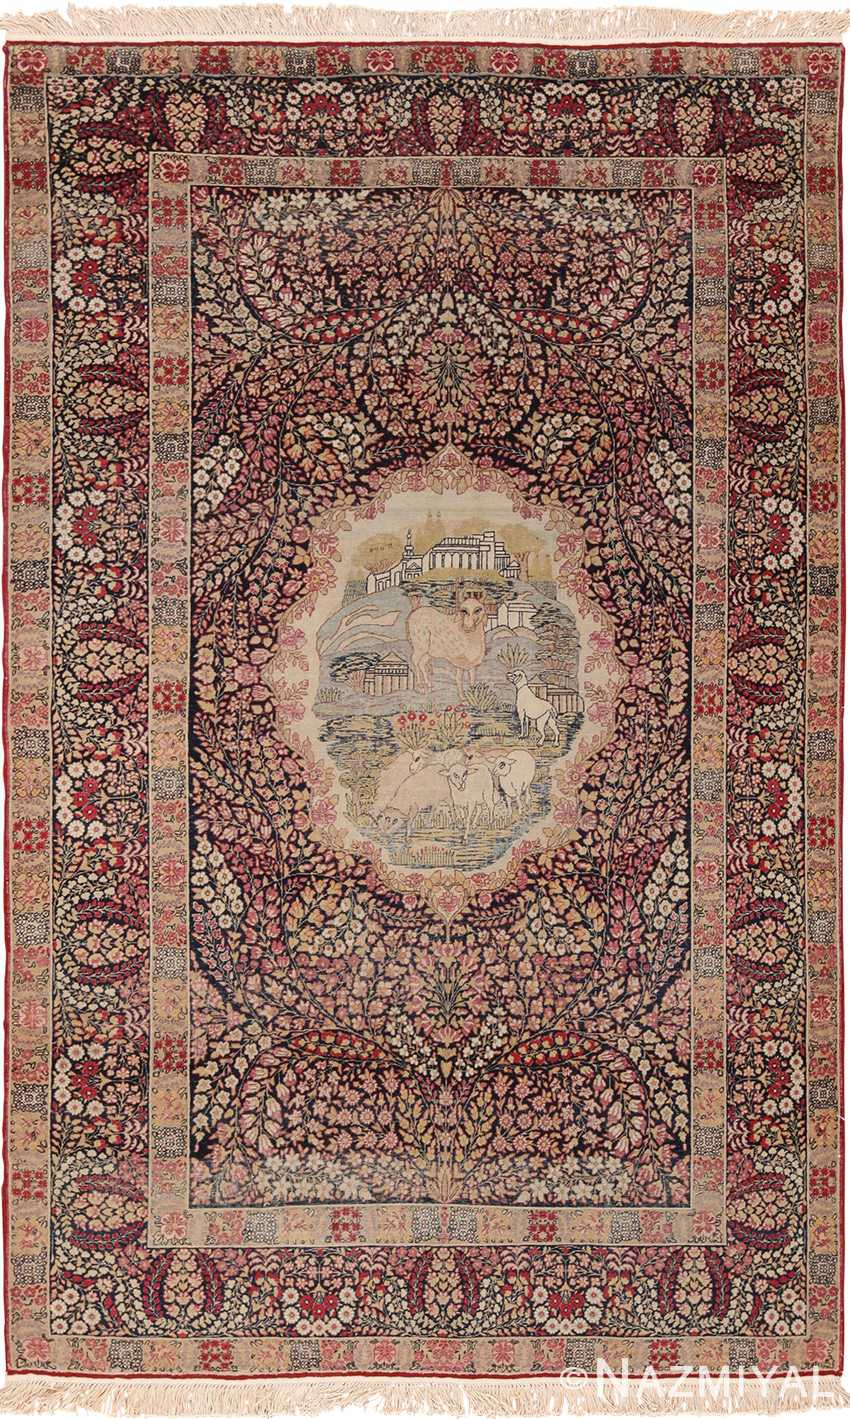 Small Size Antique Pictorial Persian Kerman Rug 49604 by Nazmiyal